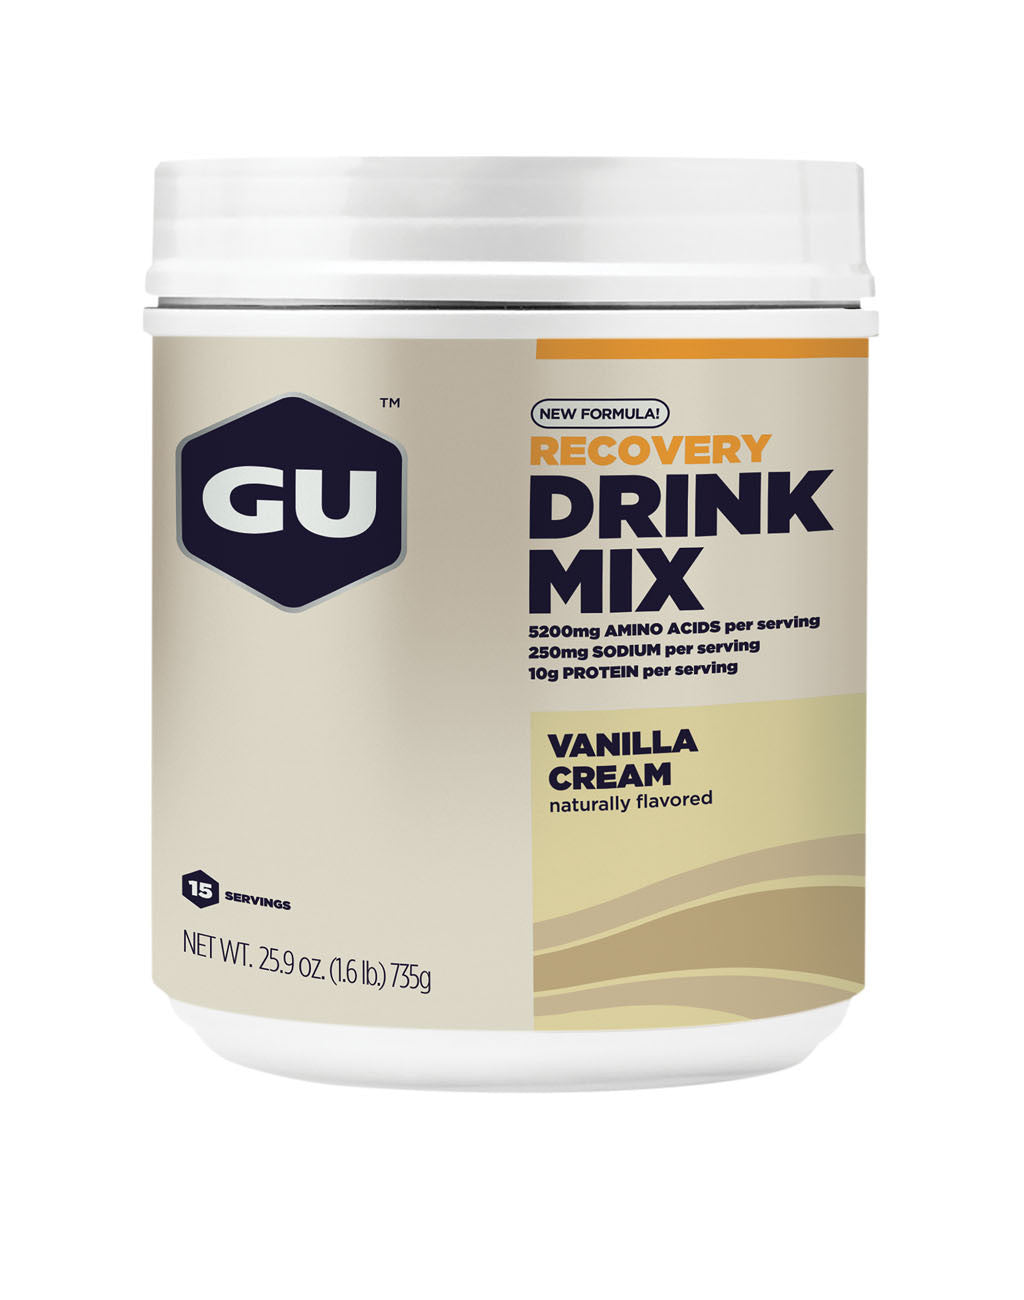 GU Recovery Drink Mix (15-serving)Vanilla Cream_master_image